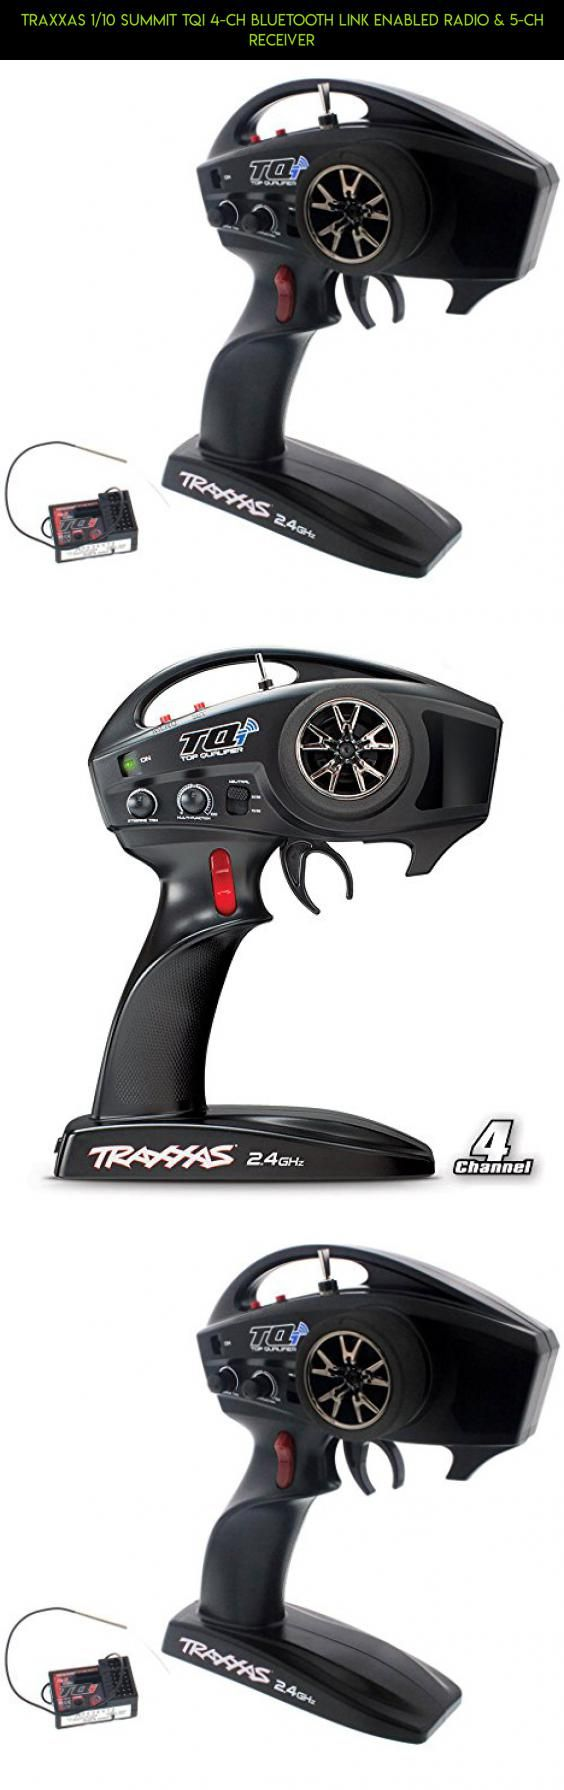 Traxxas 1/10 Summit TQi 4-Ch BLUETOOTH LINK ENABLED RADIO & 5-Ch RECEIVER #tech #camera #fpv #drone #receiver #traxxas #products #gadgets #kit #technology #shopping #plans #parts #racing